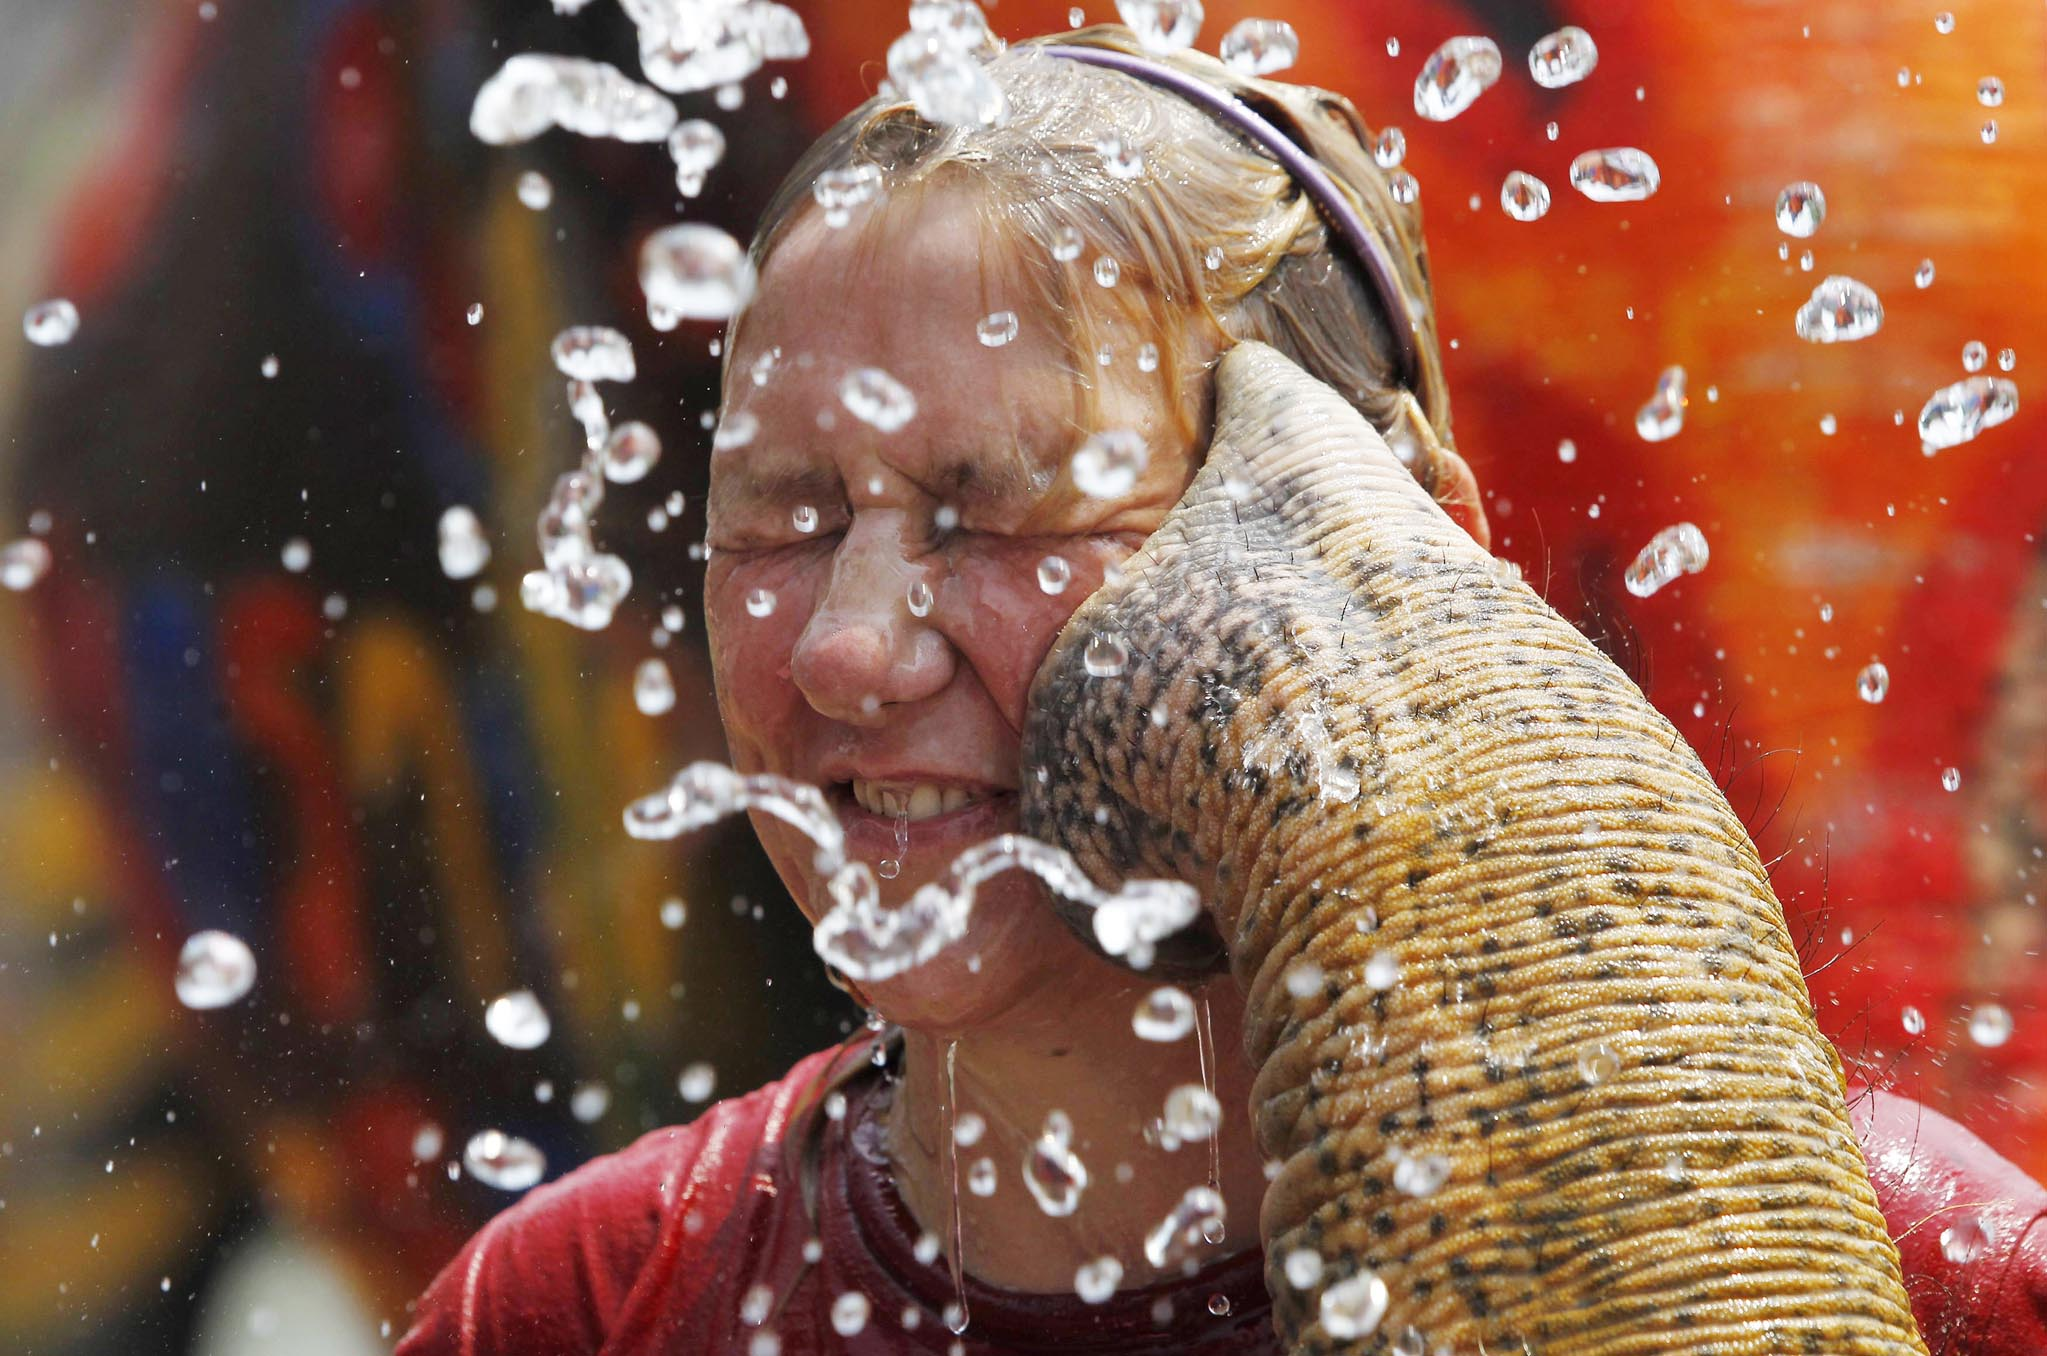 A tourist reacts as an elephant sprays her with water in celebration of the Songkran water festival in Thailand's Ayutthaya province